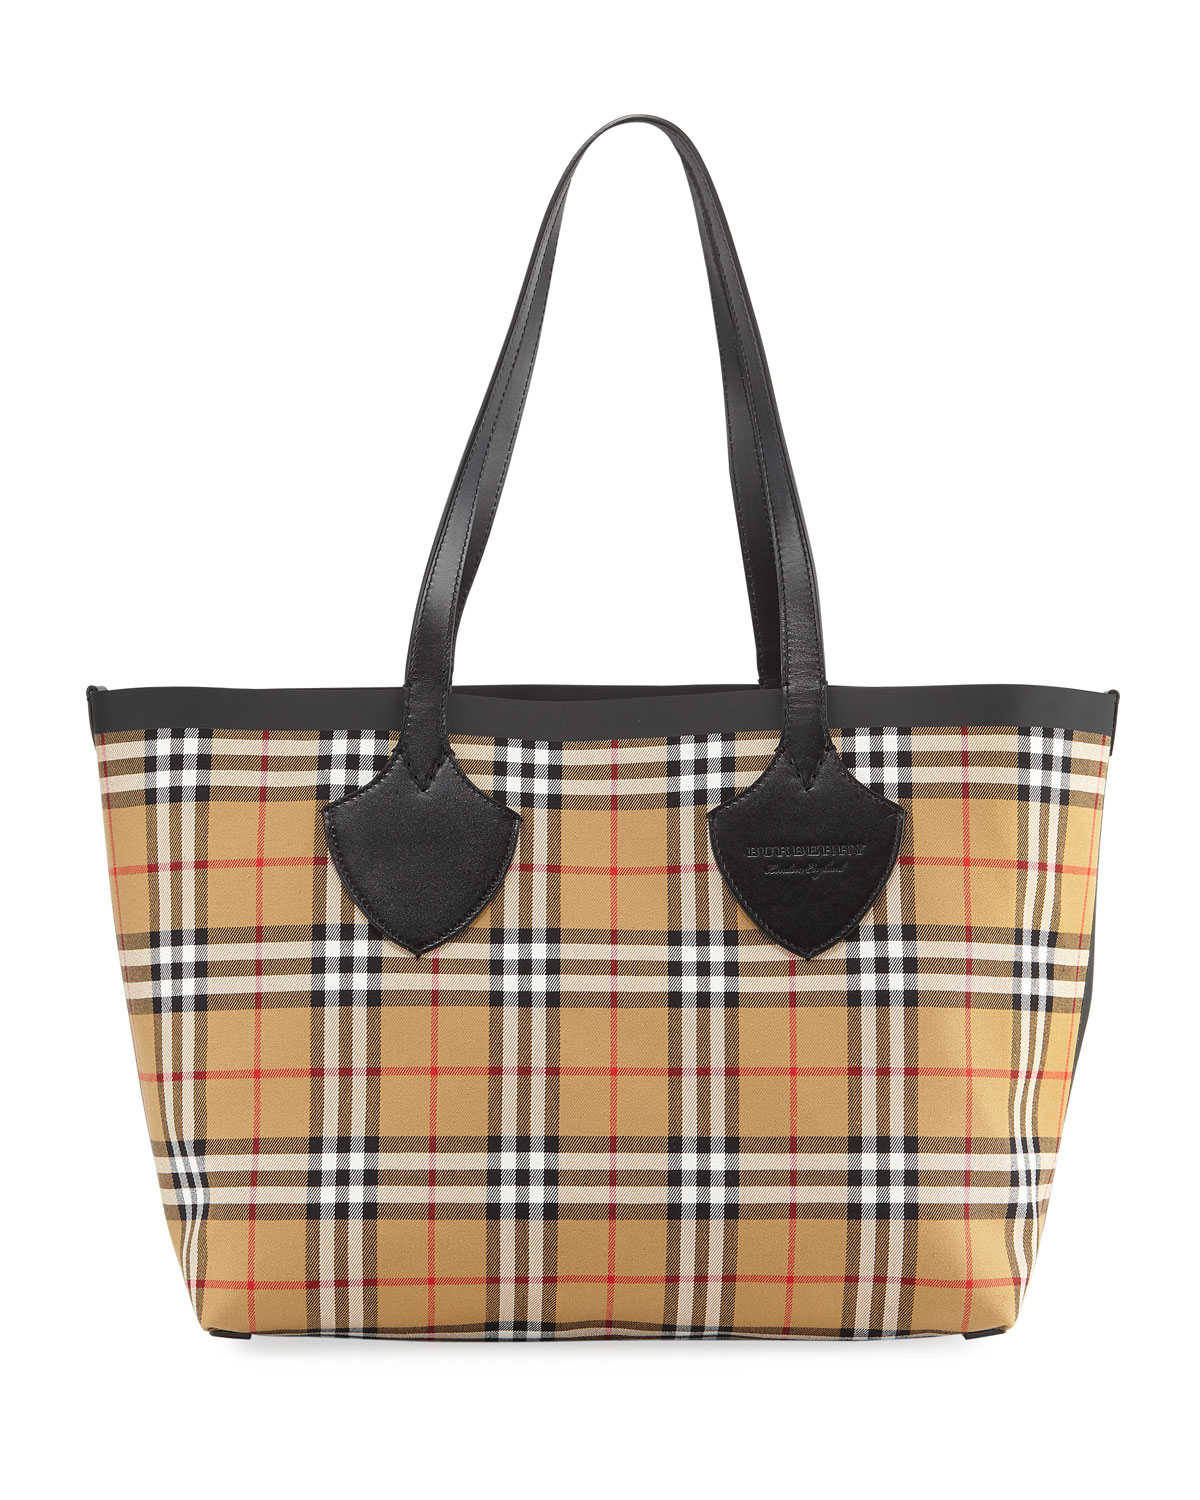 0e4deb3d90d7 Burberry Medium Reversible Bonded Tartan Check Tote Bag